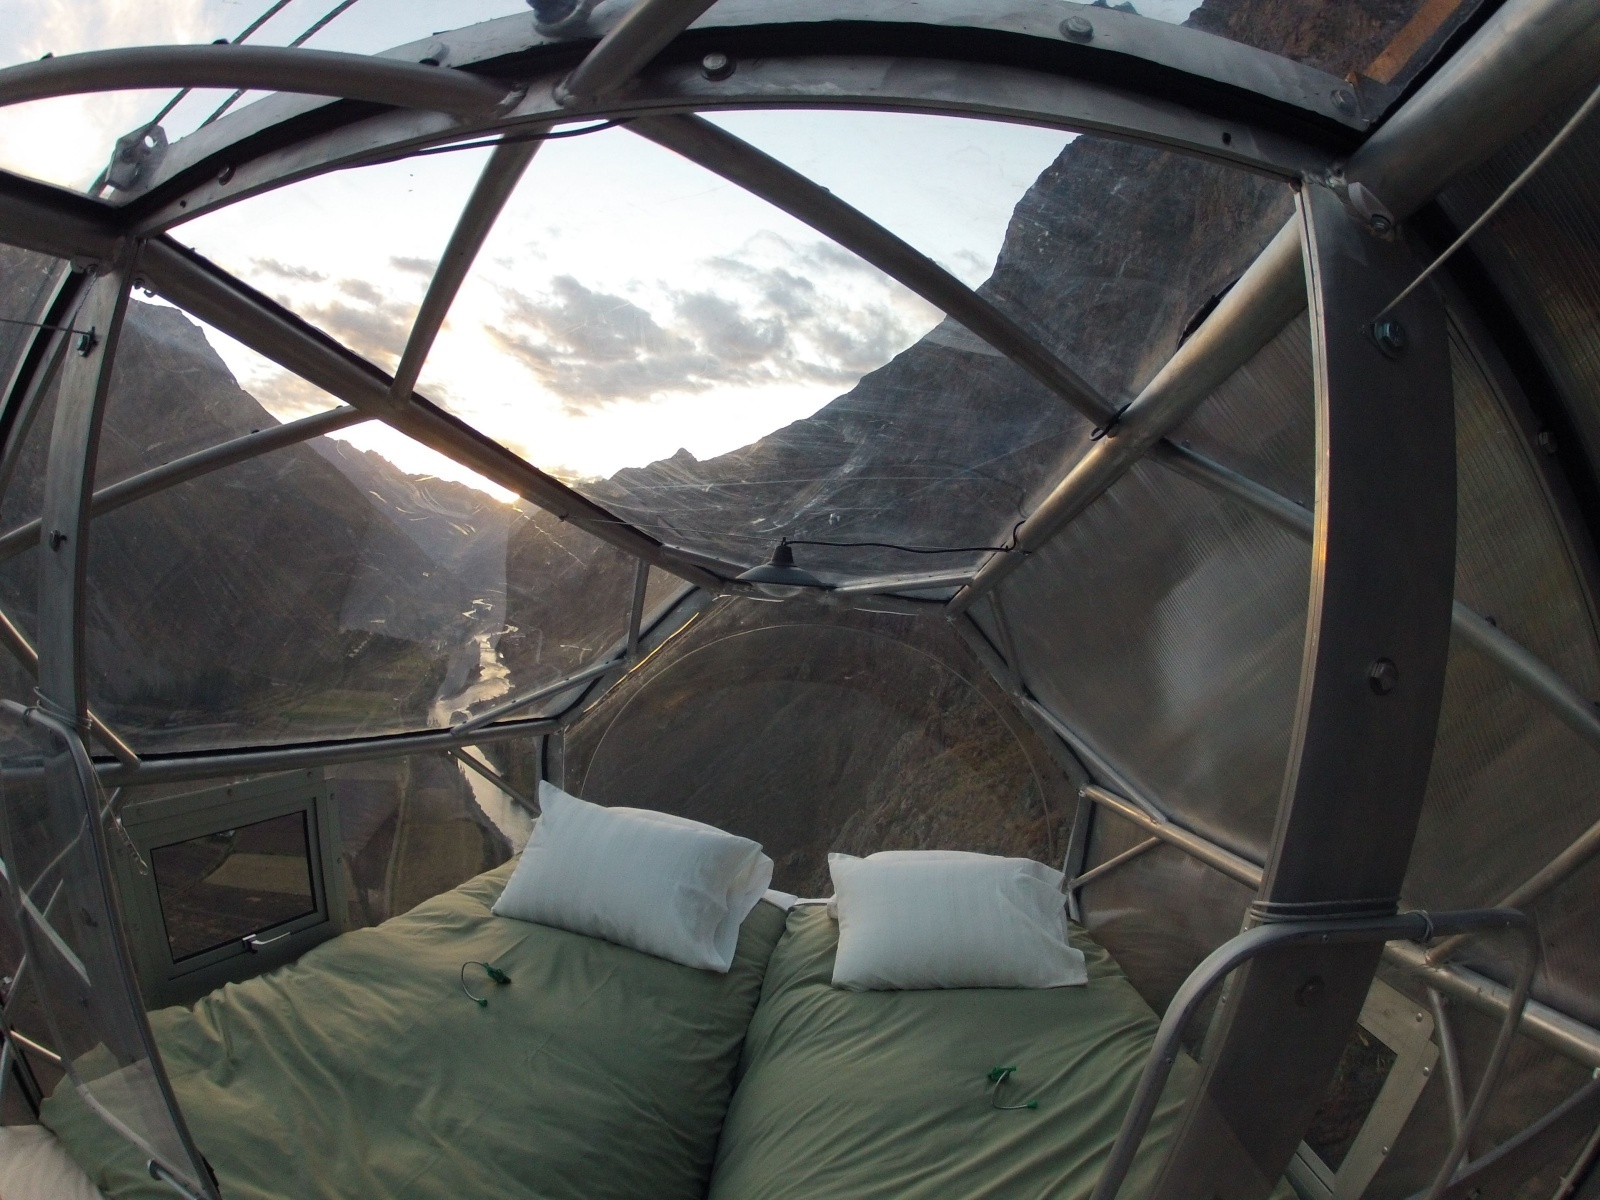 360 degree views from your room if you can climb up there – Skylodge Adventure Suites in Peru [1600×1200][OS]